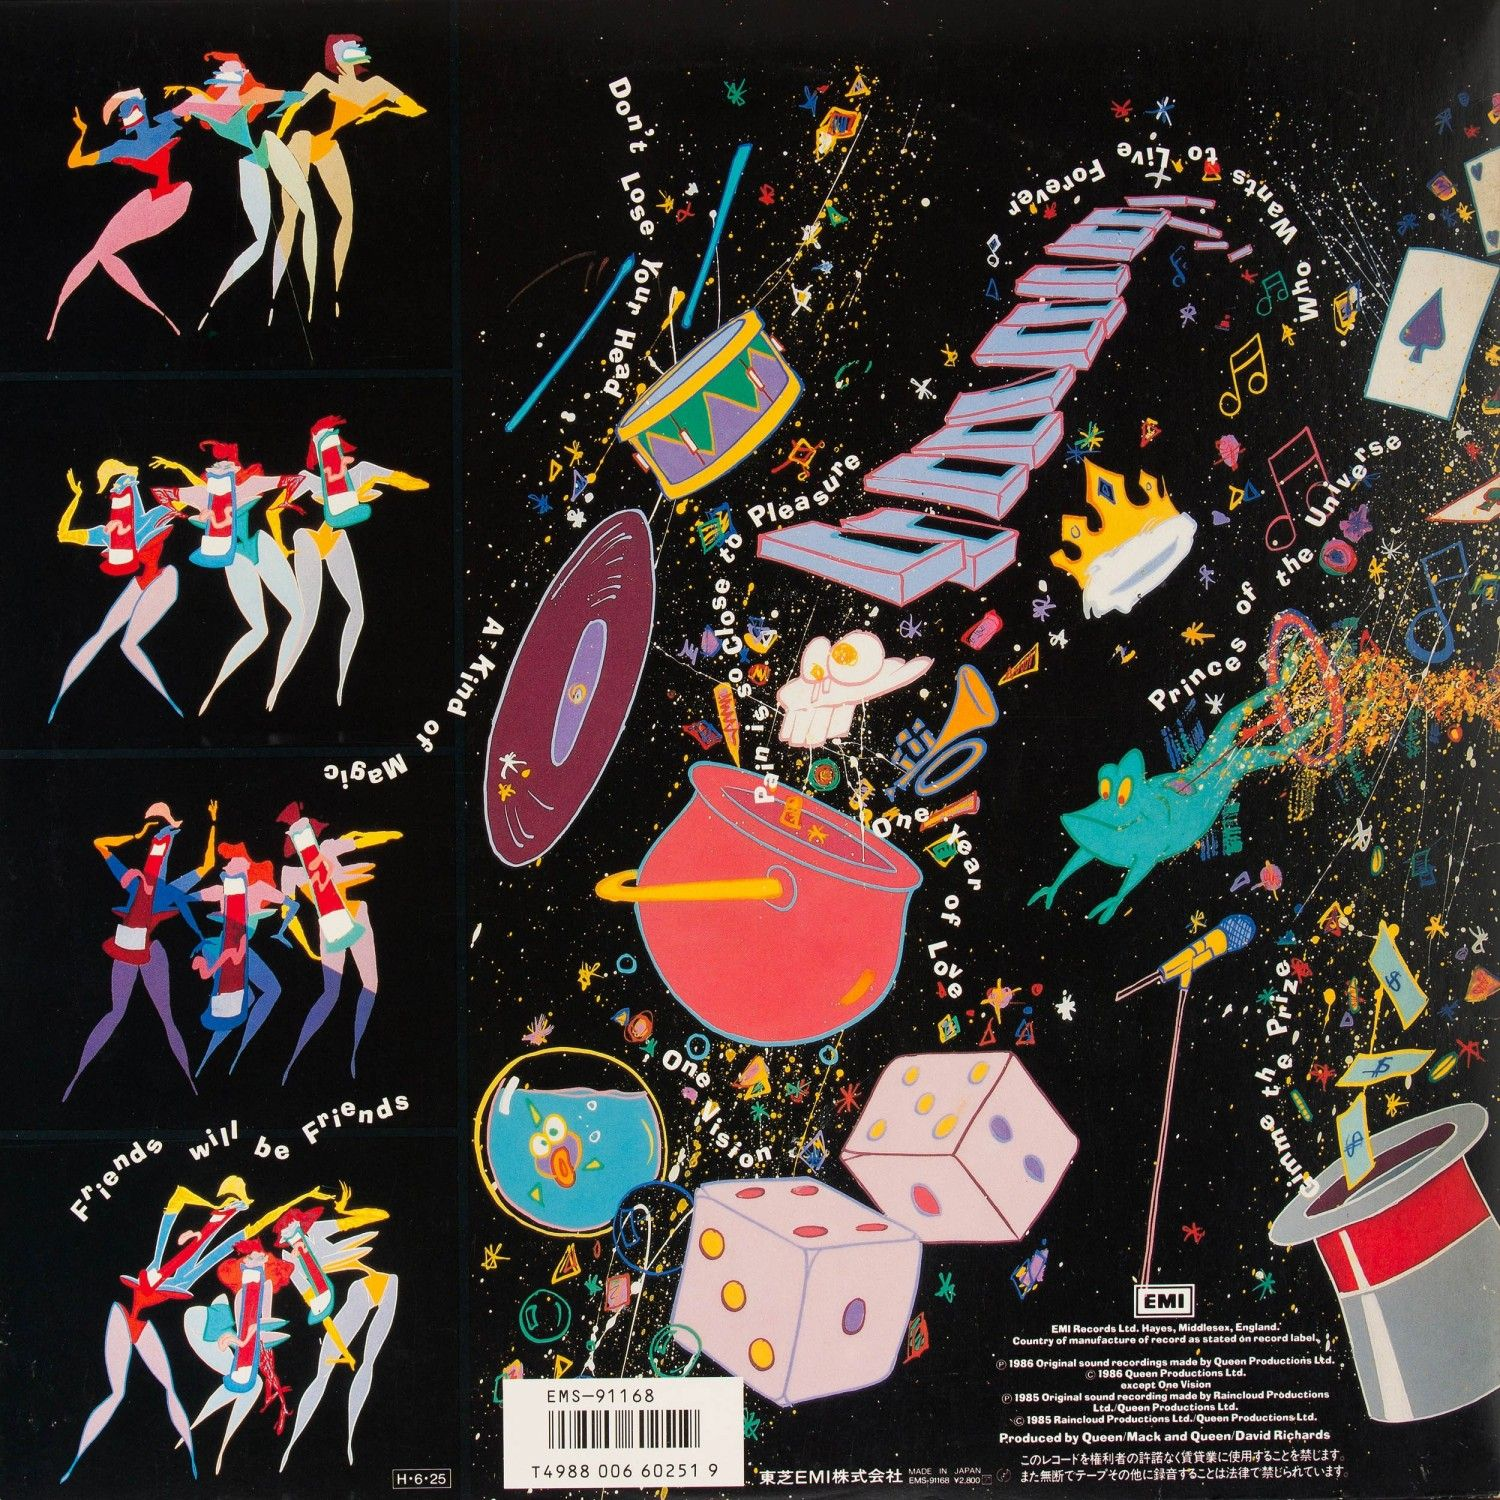 Album Art By Roger Chiasson For Queen S A Kind Of Magic 1986 A Kind Of Magic Album Art Artist Inspiration